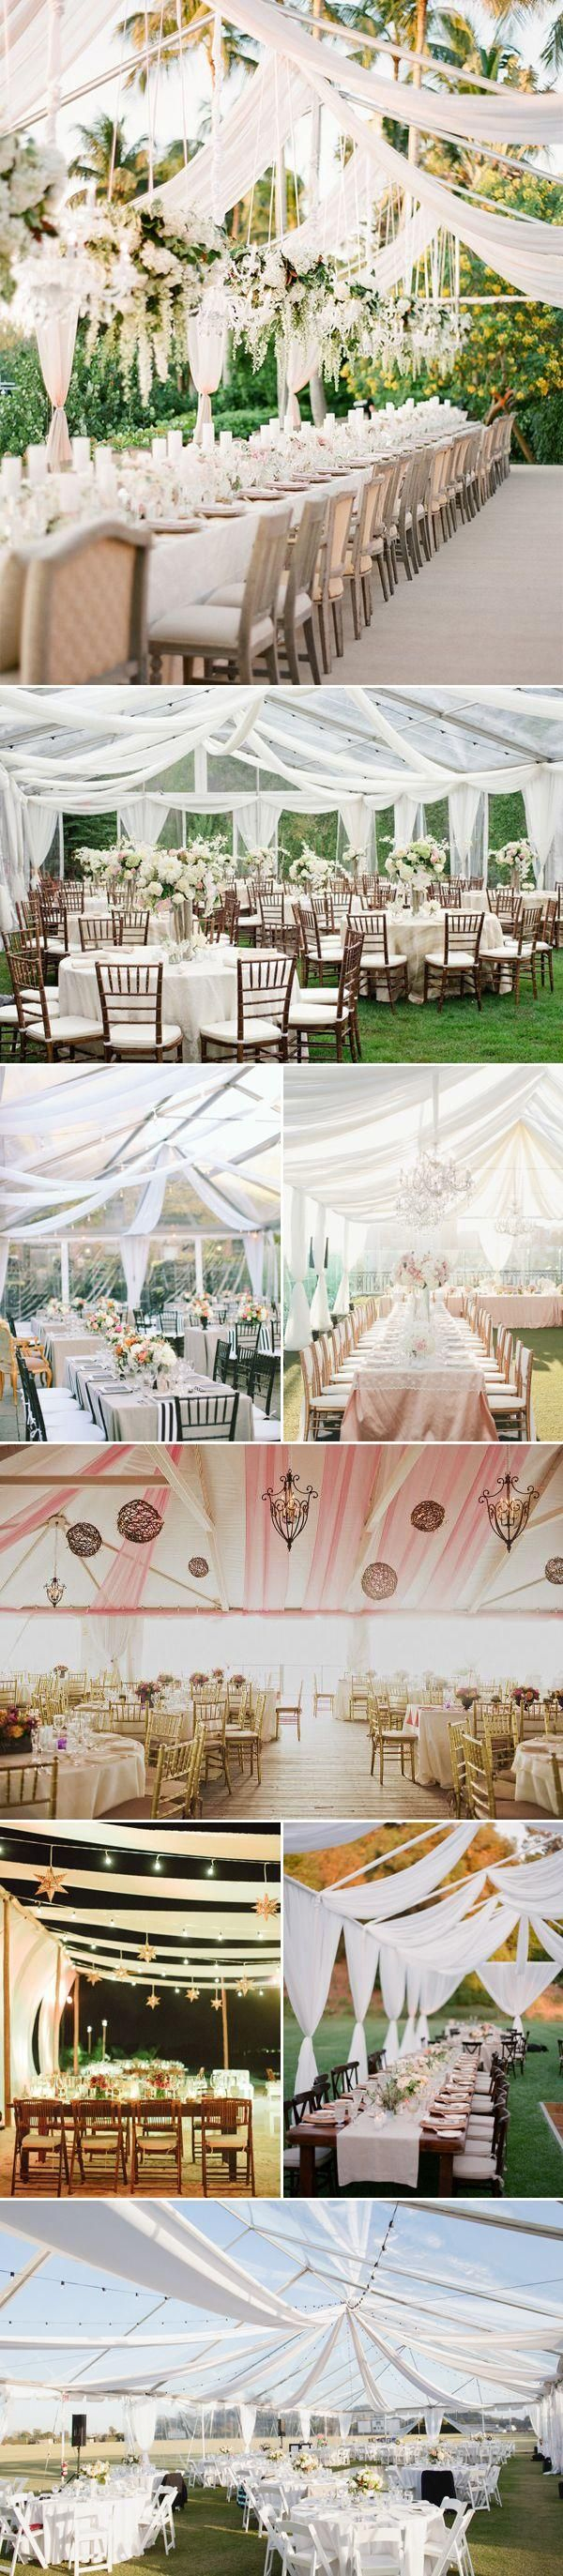 40 Beautiful Ways to Decorate Your Wedding Tent - Draped Fabric #outdoor